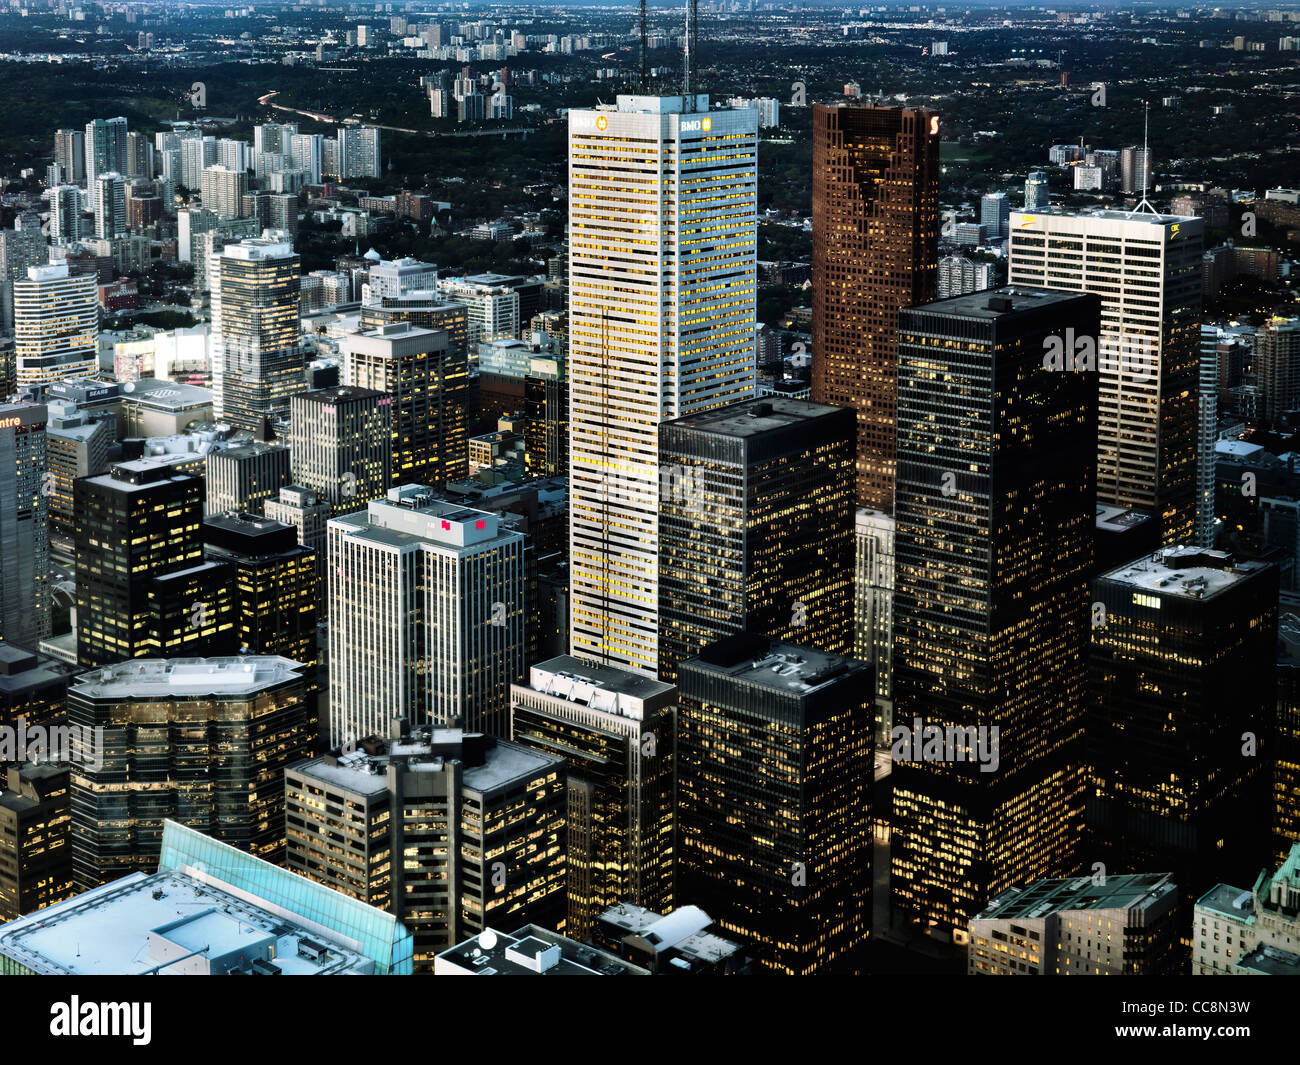 Aerial view of the city of Toronto downtown towers at dusk, Ontario, Canada 2009. - Stock Image